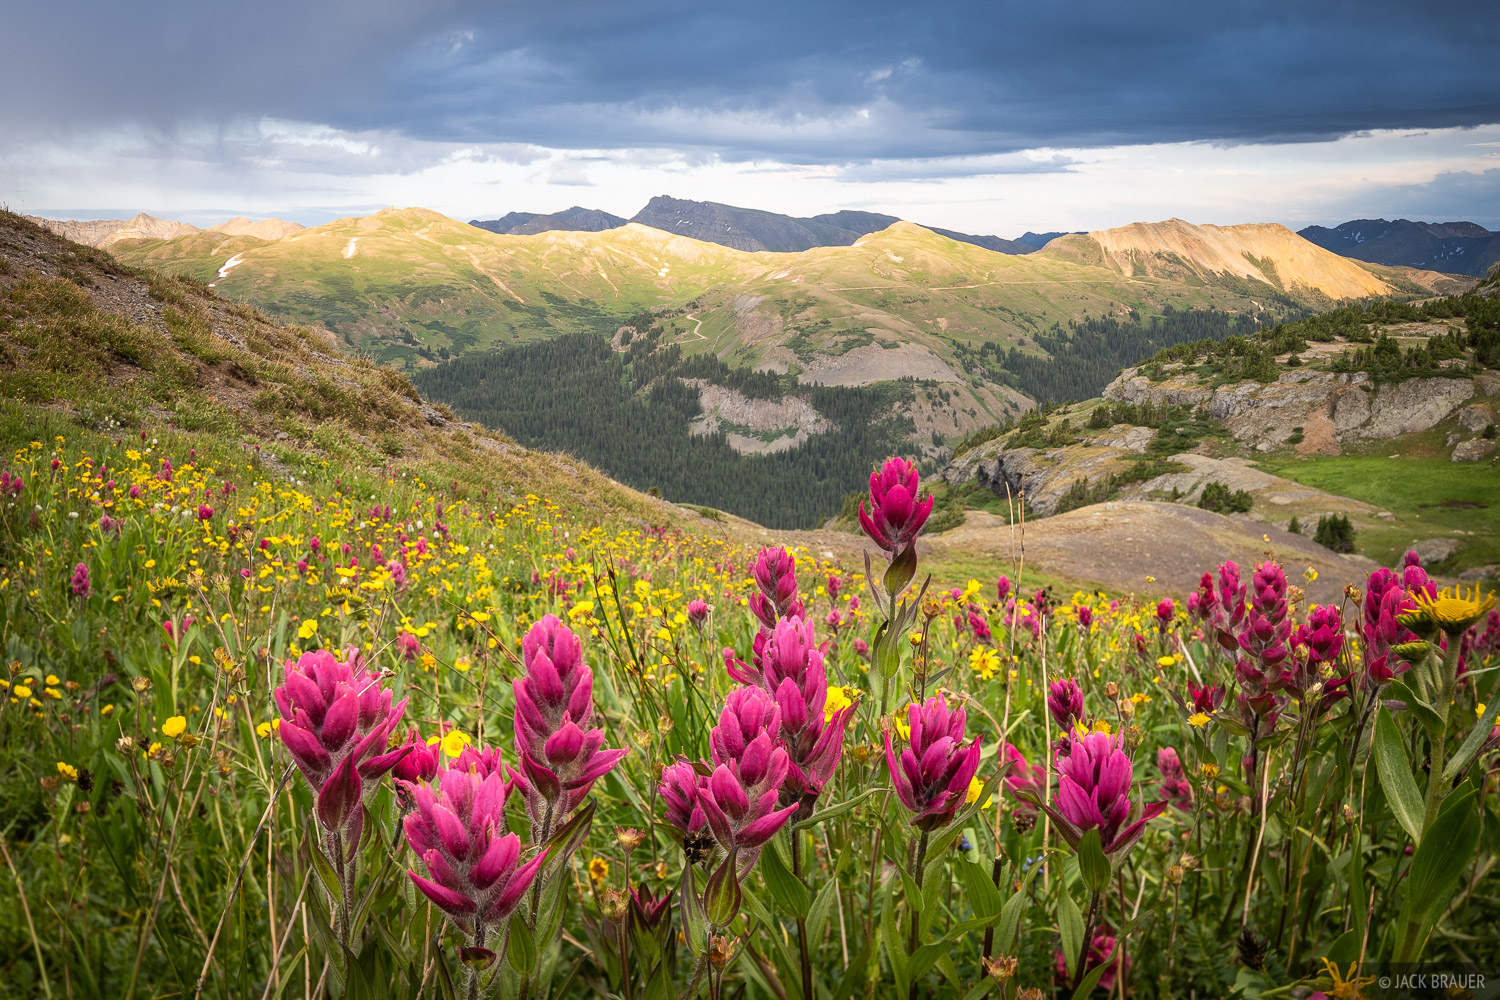 Indian Paintbrush on a cloudy evening in the San Juan Mountains between Ouray and Silverton.